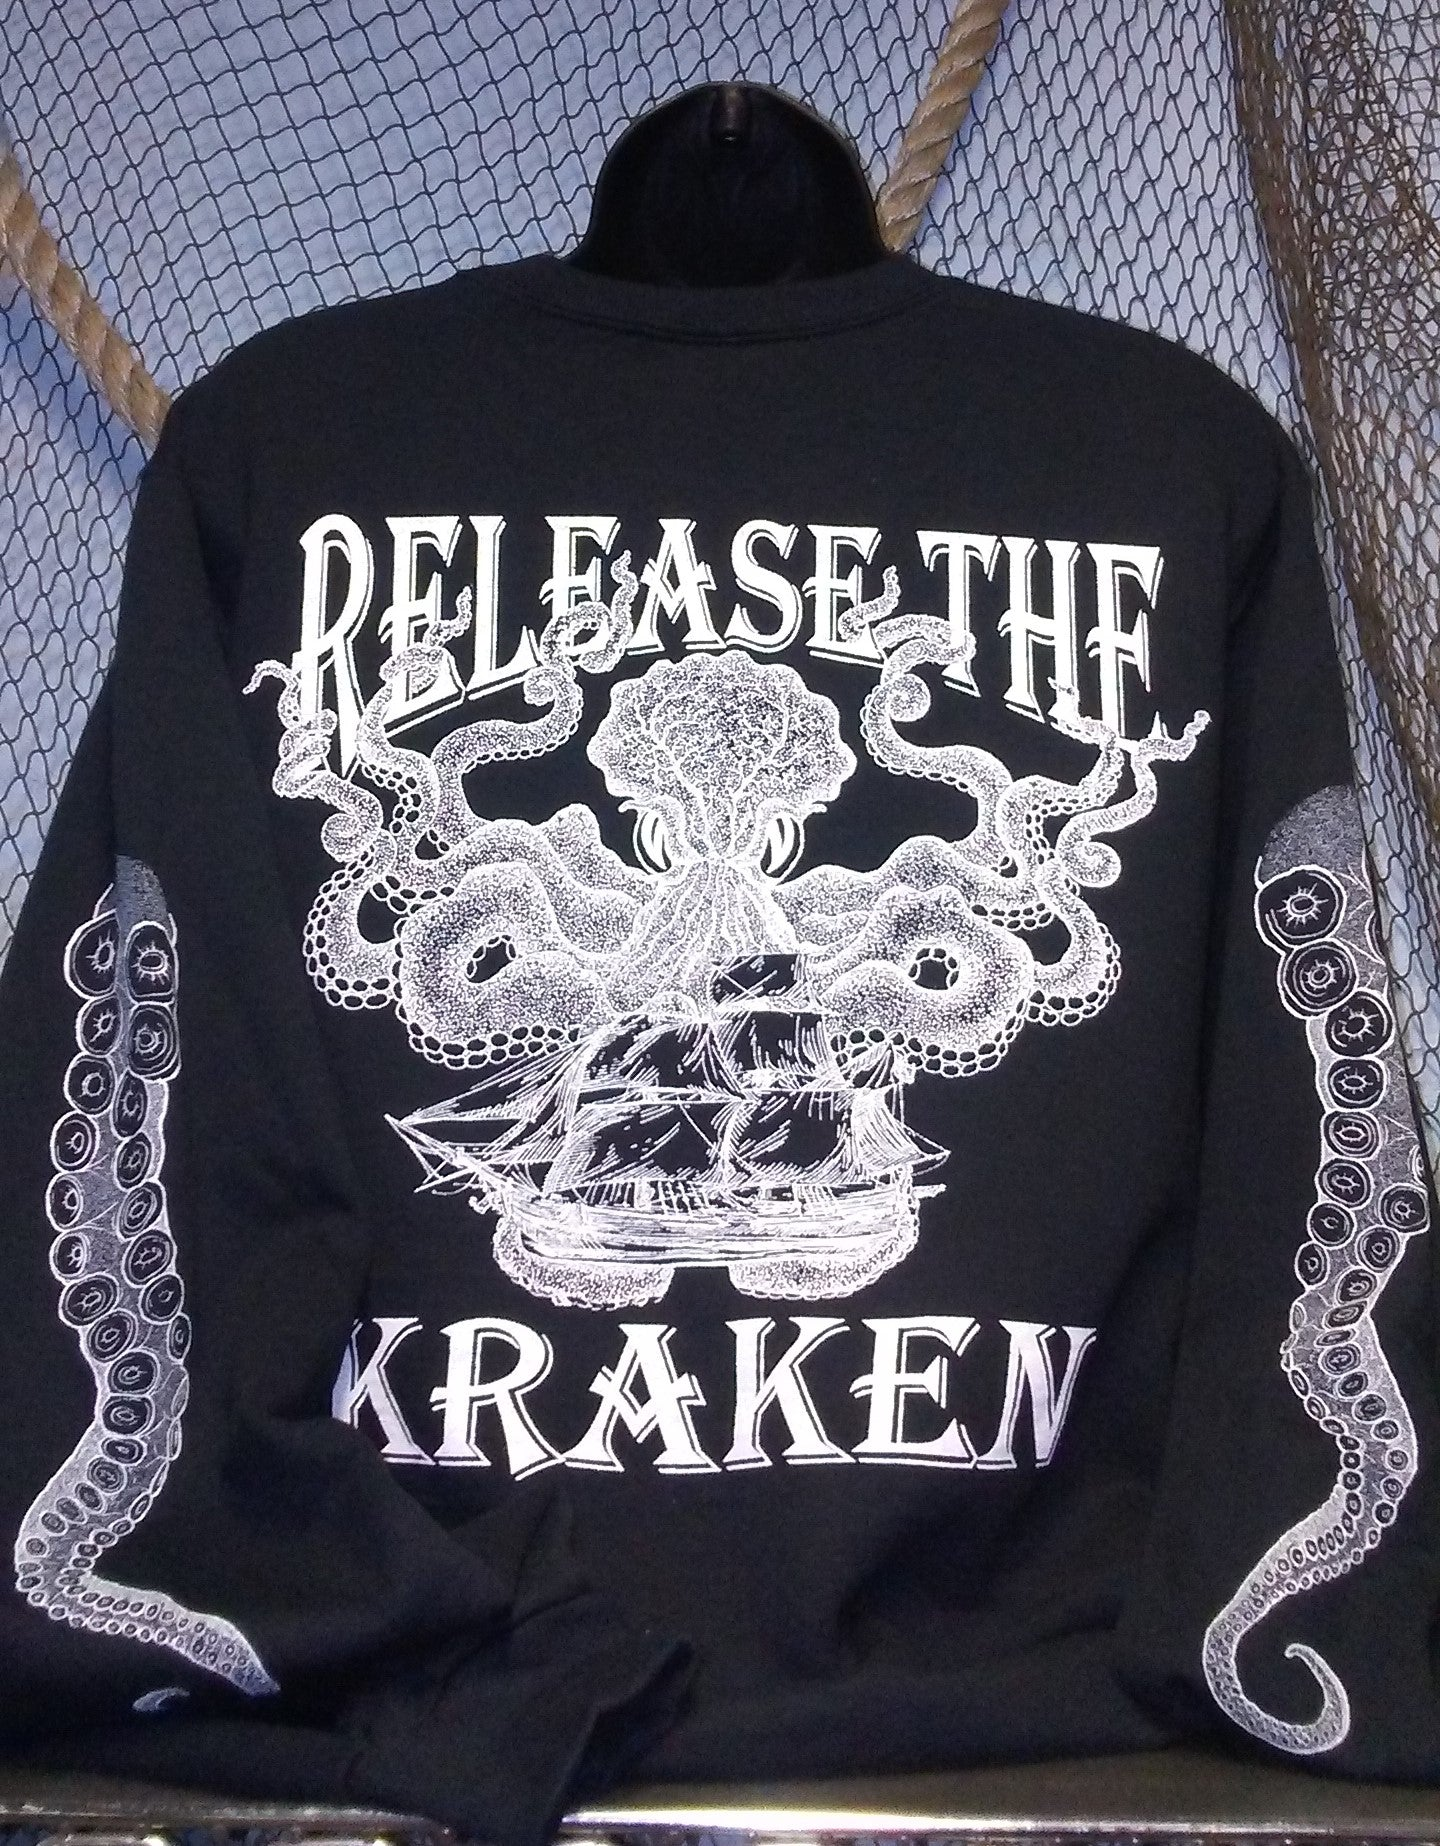 Crew Neck Sweatshirt - Release the Kraken Black